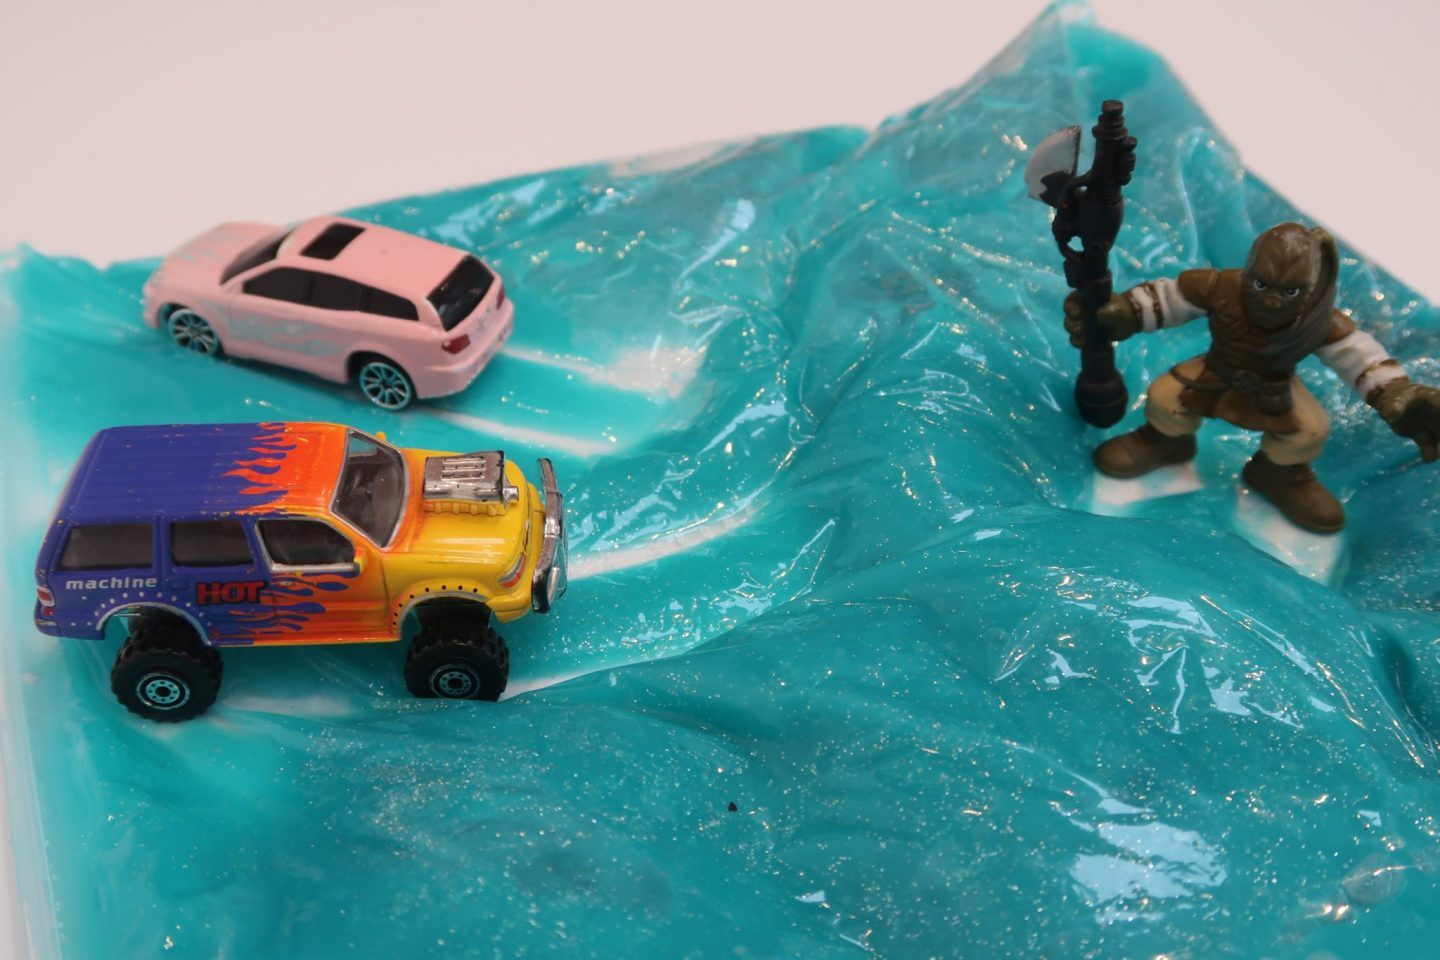 Blue slime in a plastic bag, with toy cars and a figure on top of it